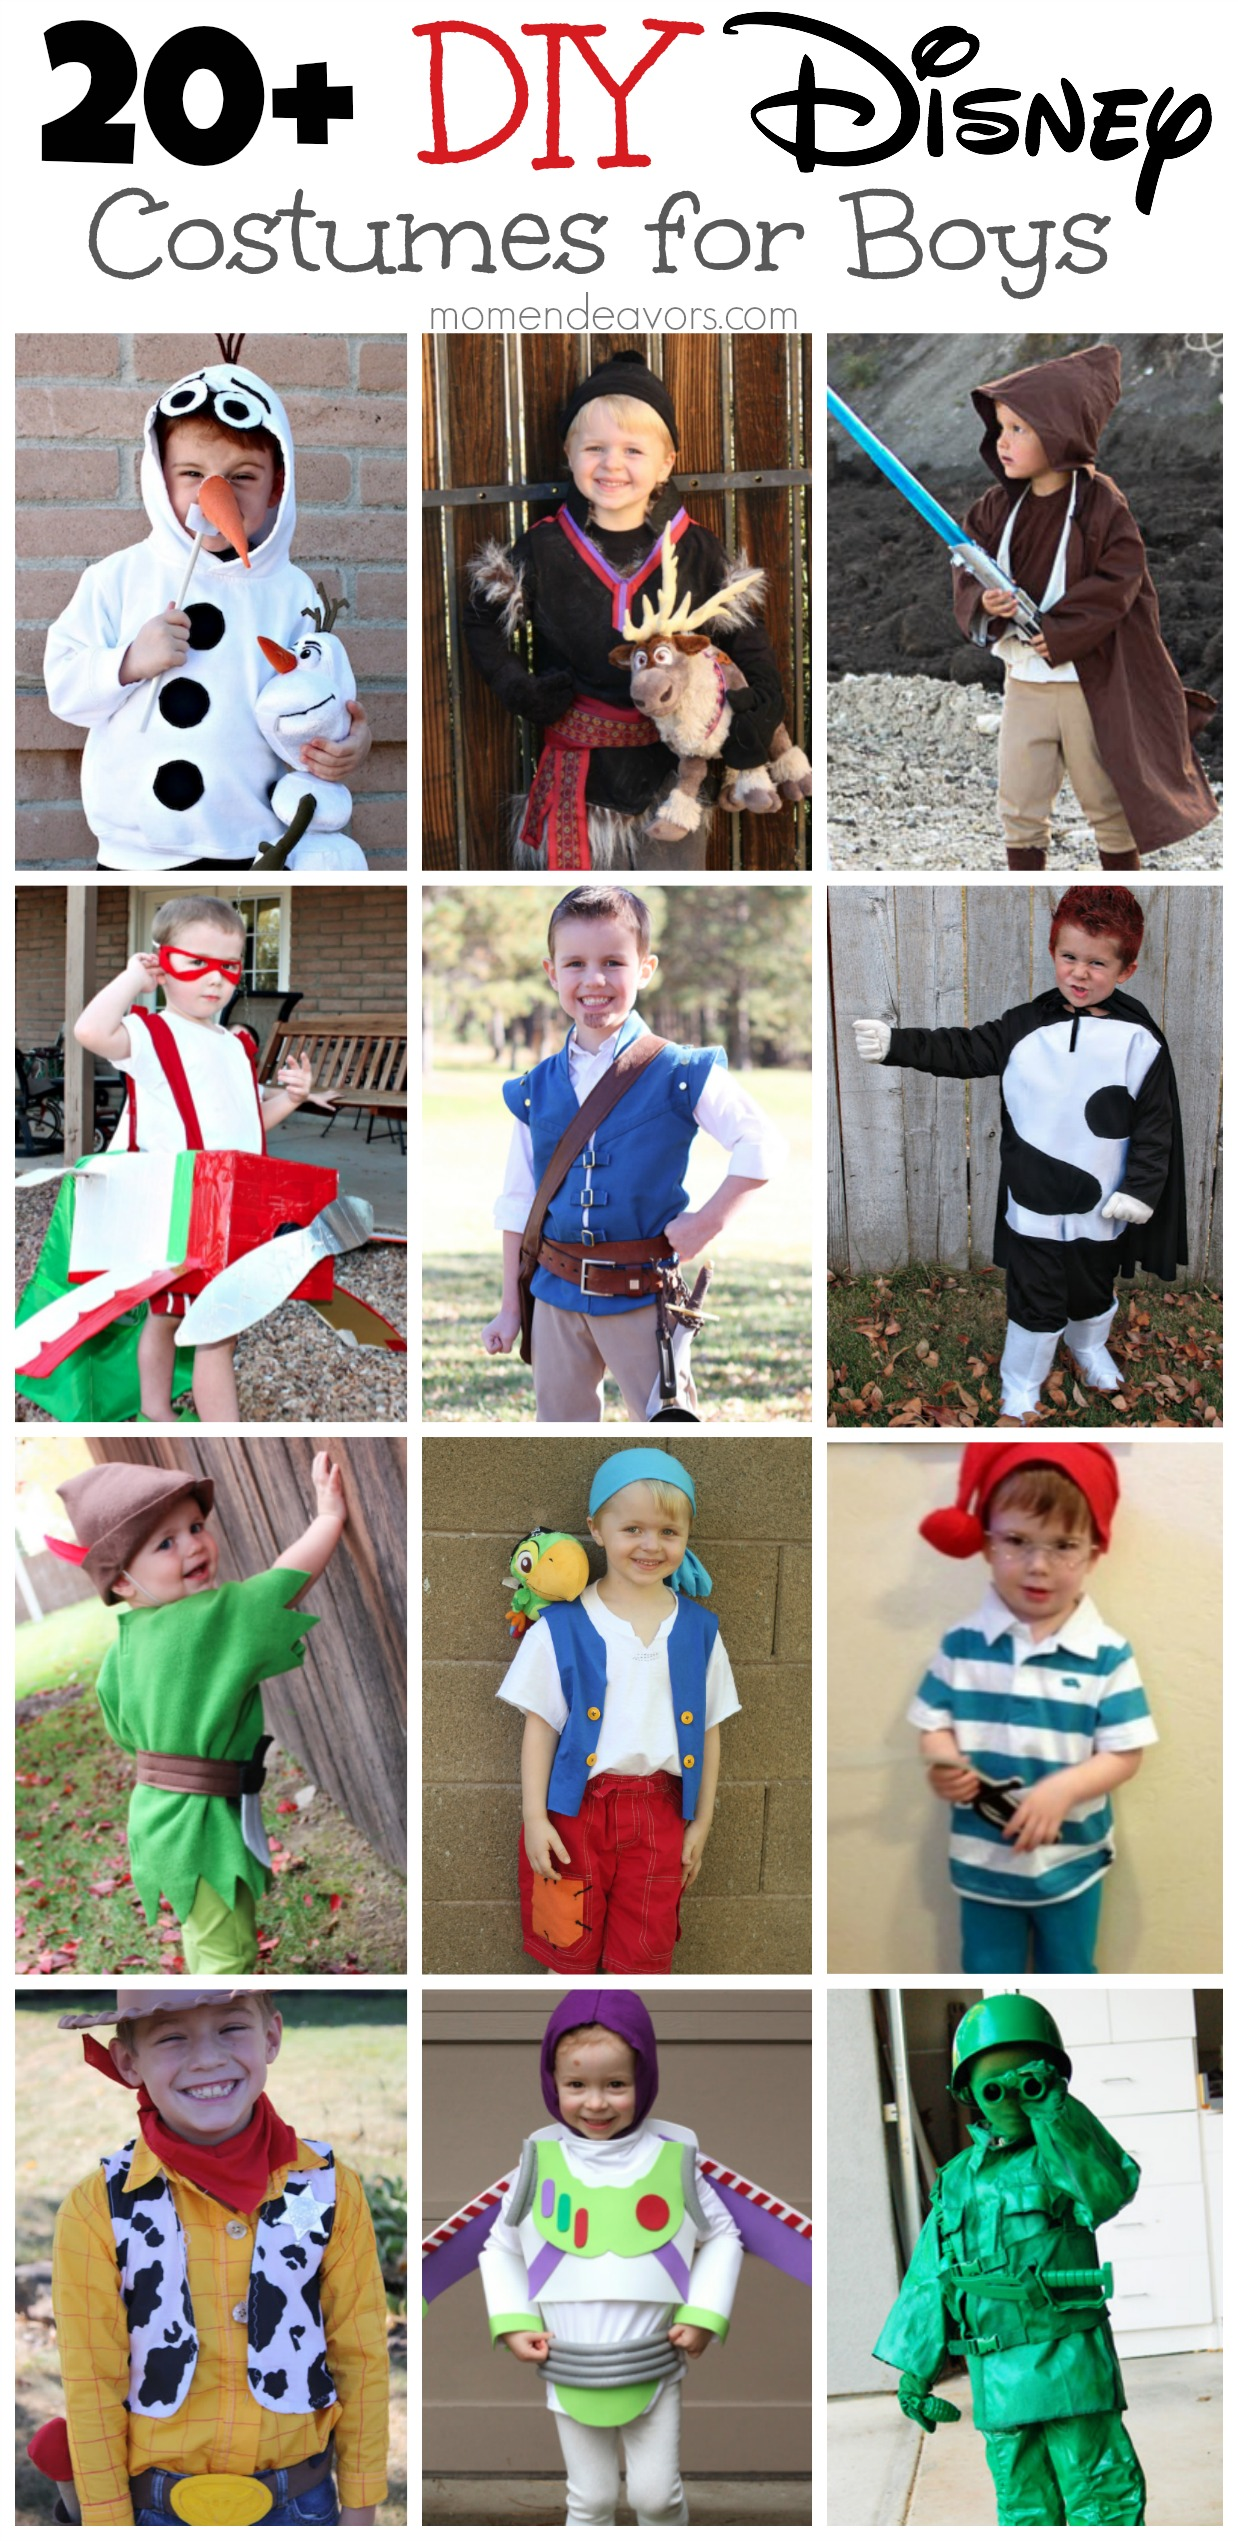 Diy disney costumes for boys diy disney costumes for boys solutioingenieria Image collections